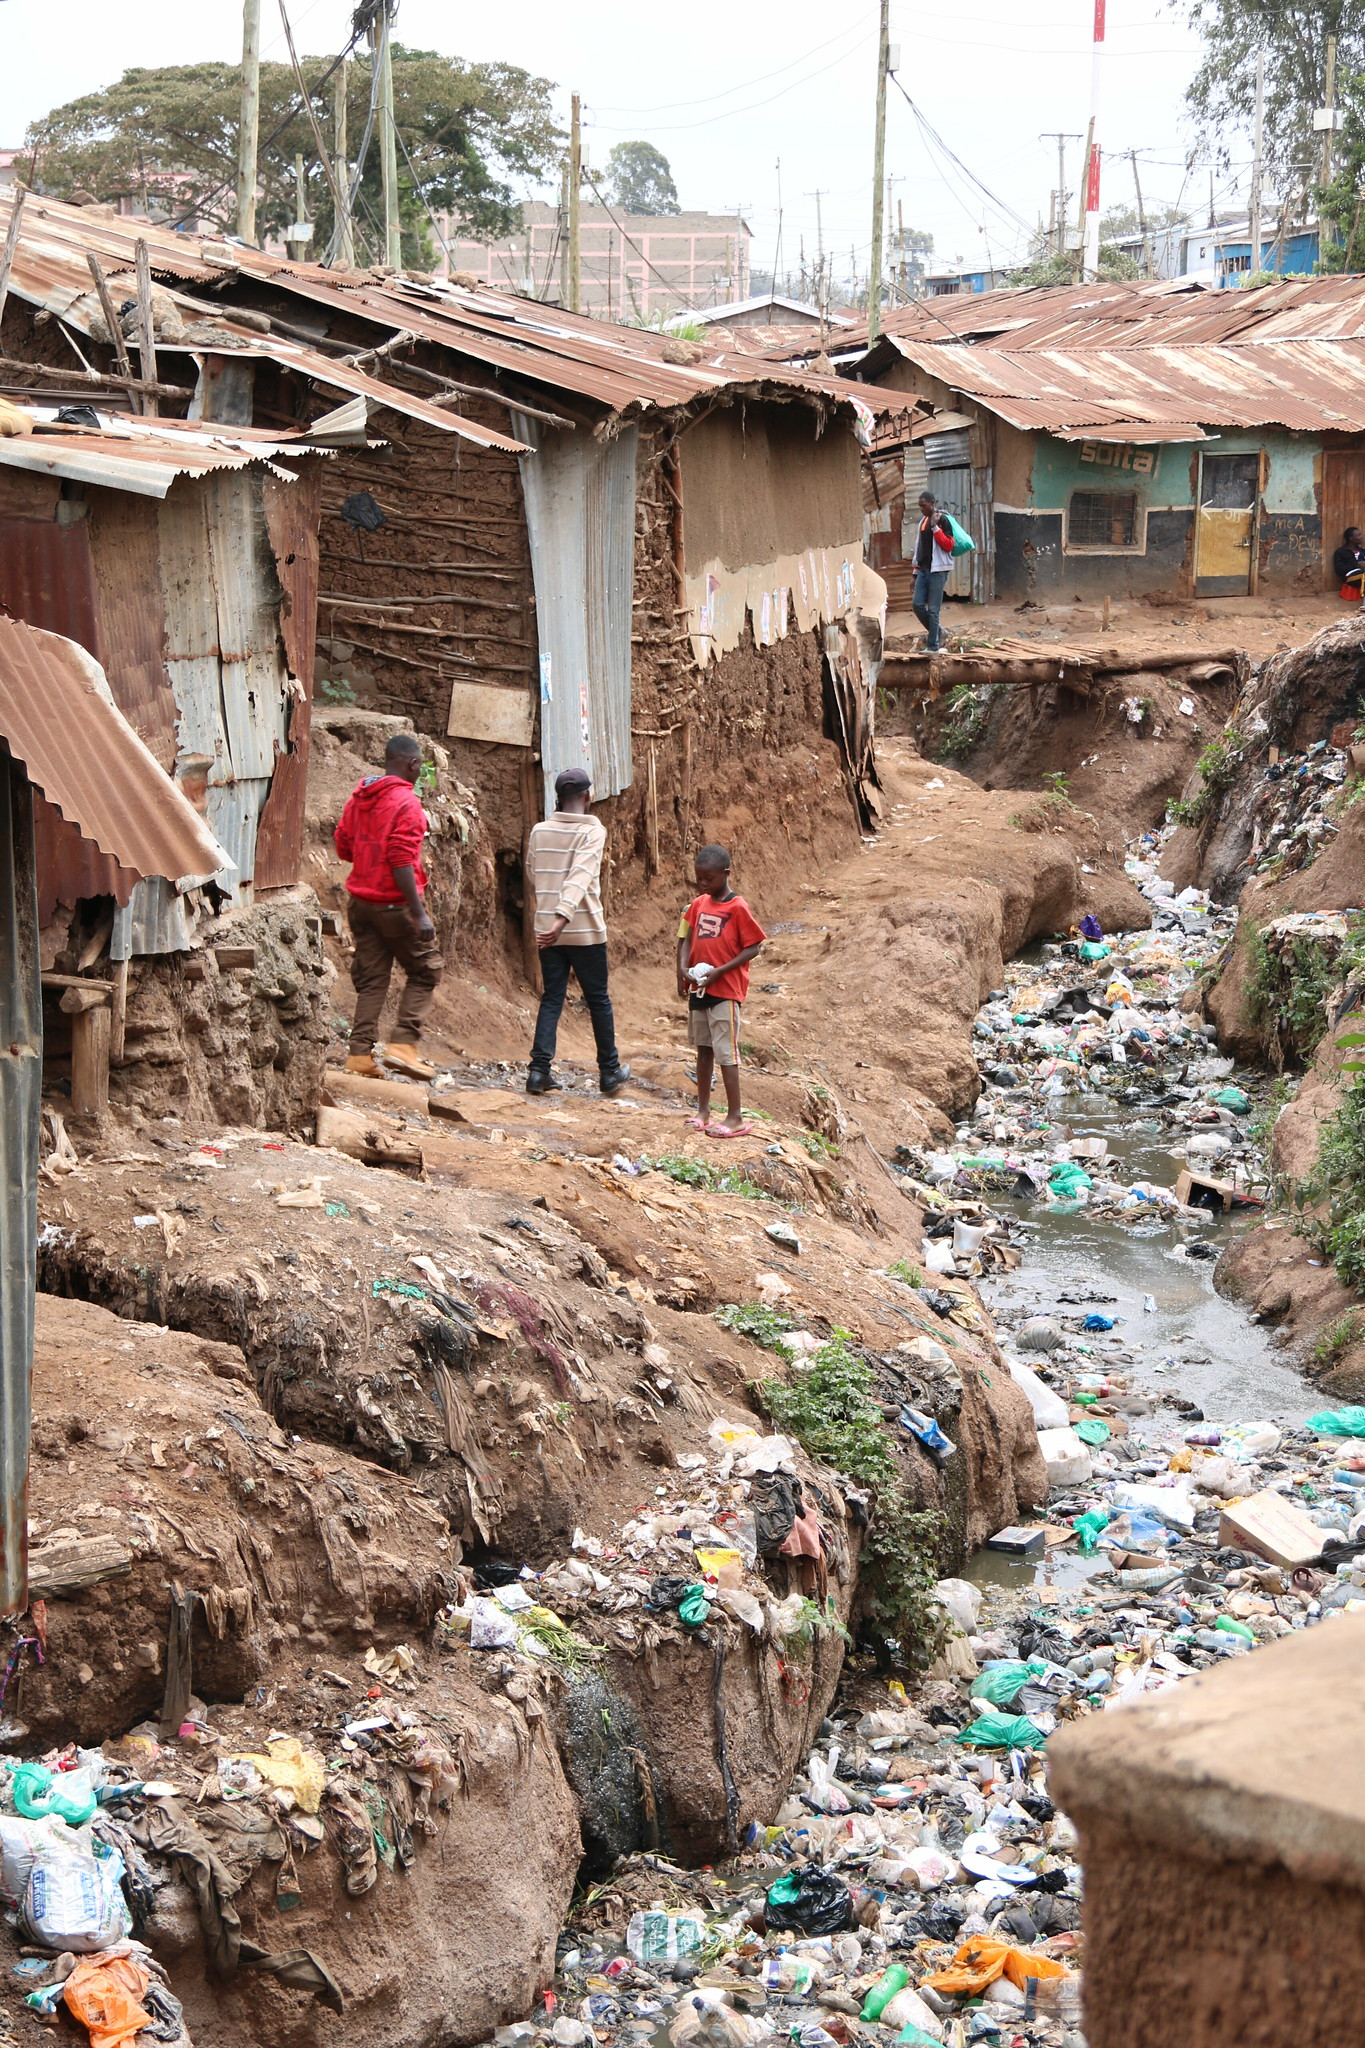 <p>A polluted canal in Kibera, Nairobi, Kenya. Photo by Talia Rubnitz/WRI</p>